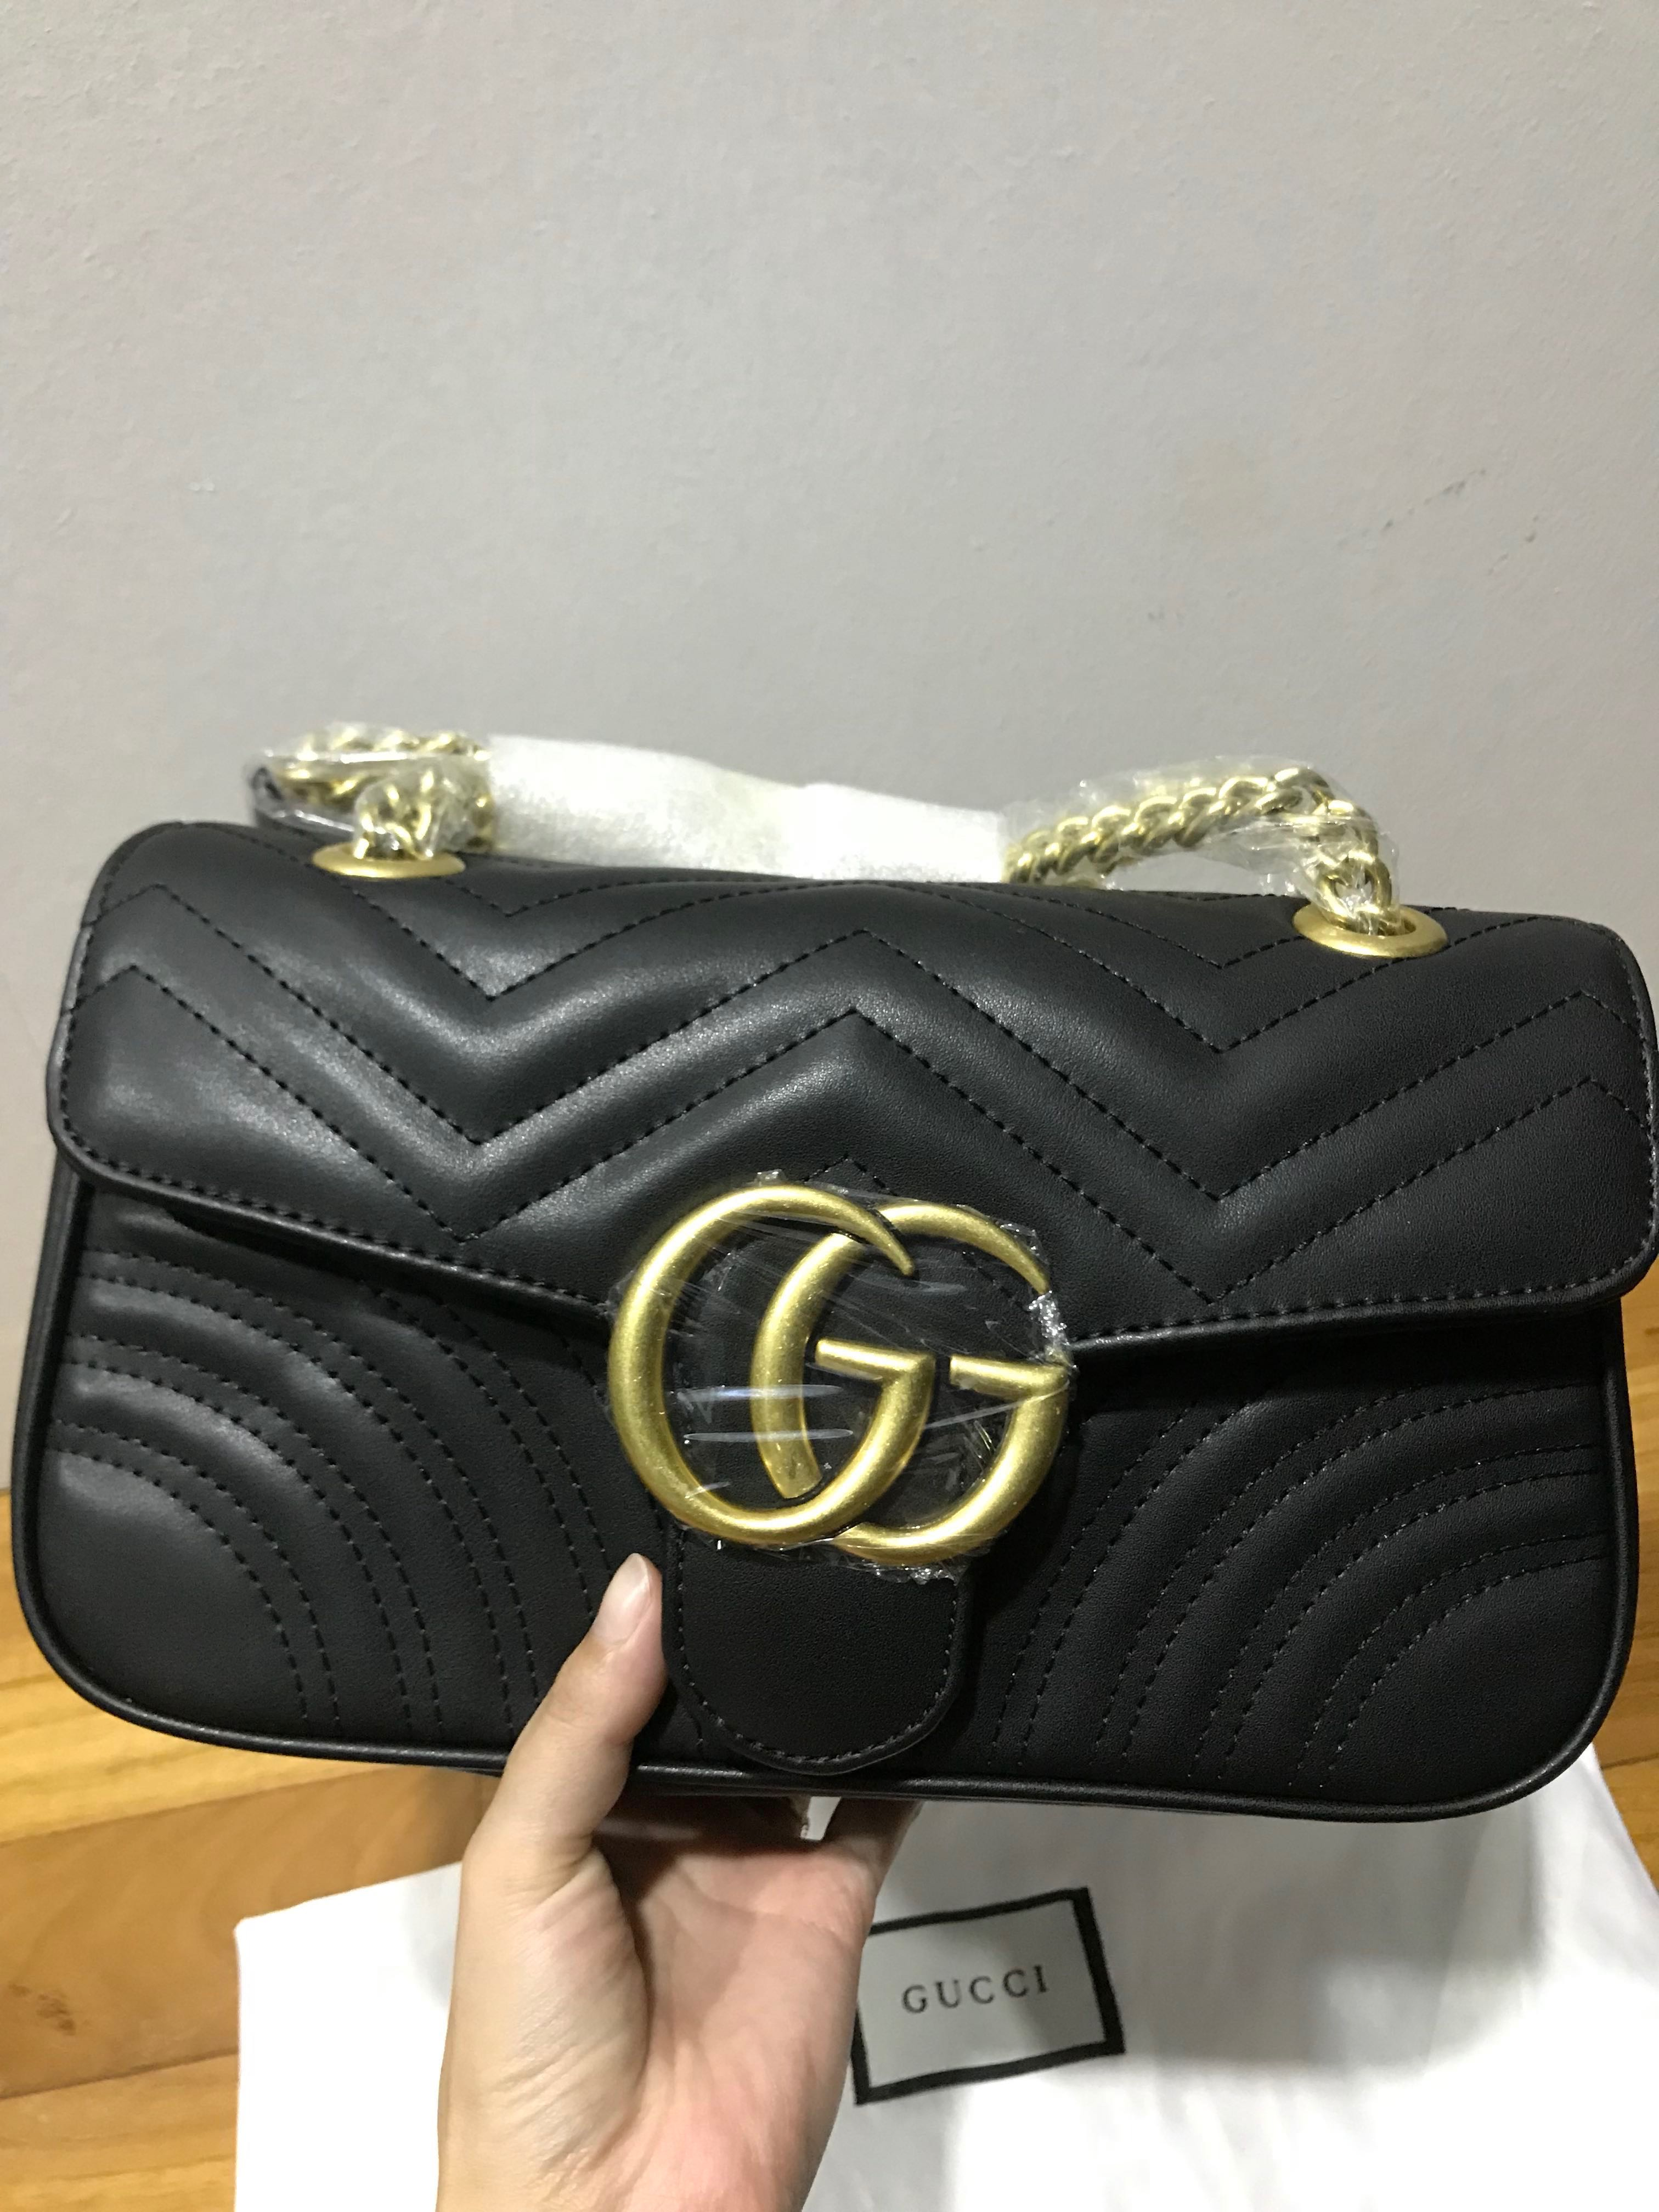 c7889d10480013 Gucci marmont sling bag , Luxury, Bags & Wallets, Sling Bags on Carousell